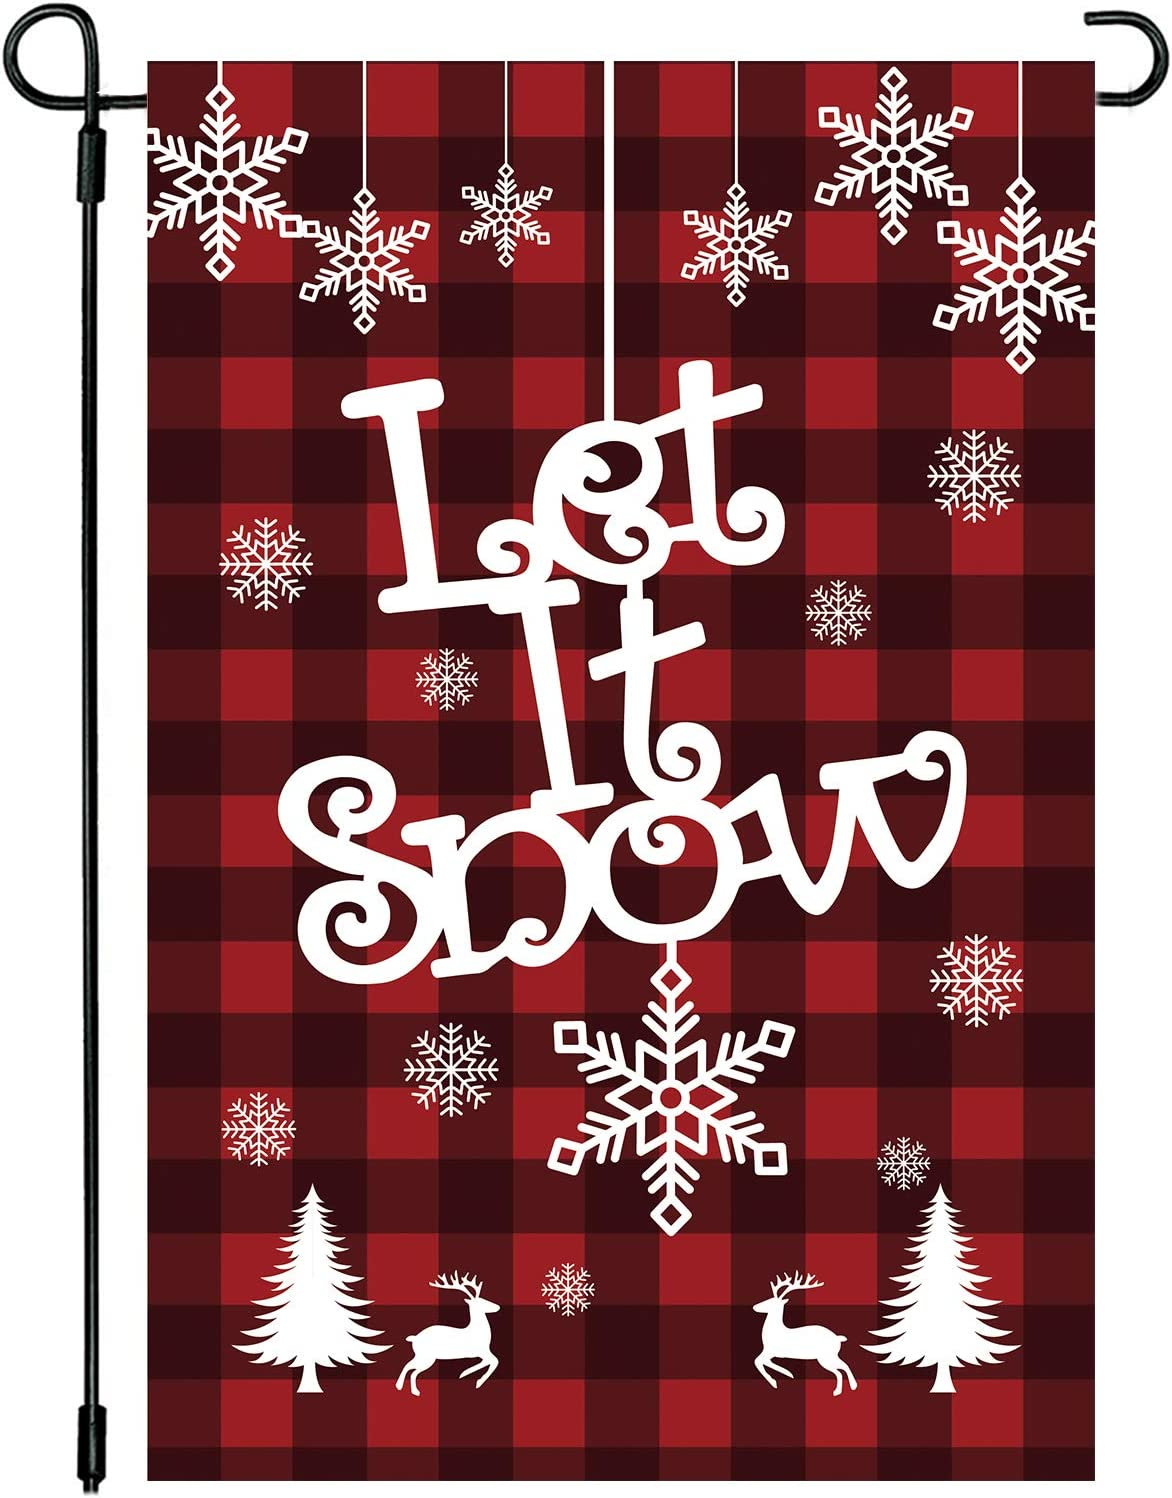 PTFNY Red Black Let it Snow Christmas Garden Flag 12 x 18 Inch Double Sided Buffalo Check Plaids Snowflake Christmas Winter Holiday Farmhouse Yard Outdoor Decoration